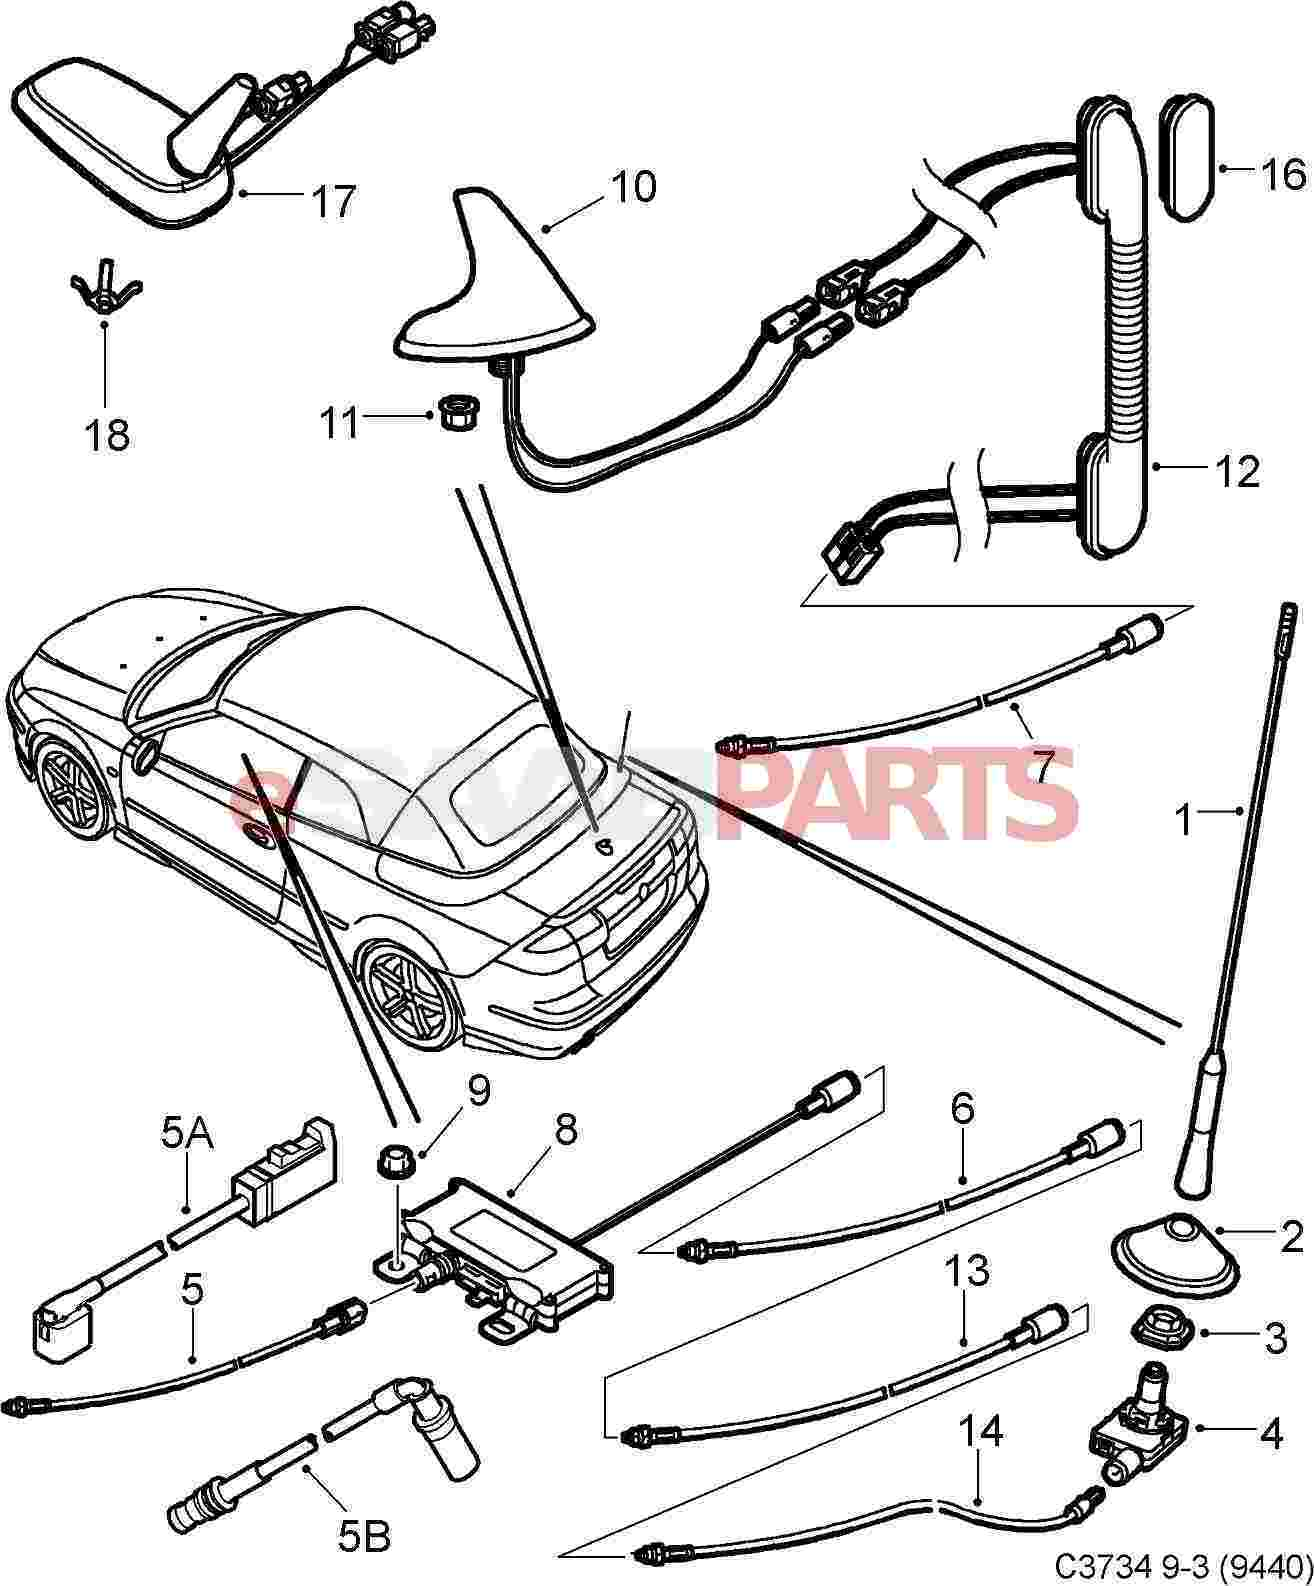 1994 subaru justy wiring diagram subaru engine parts 1992 Subaru Justy 1991 Subaru  Justy